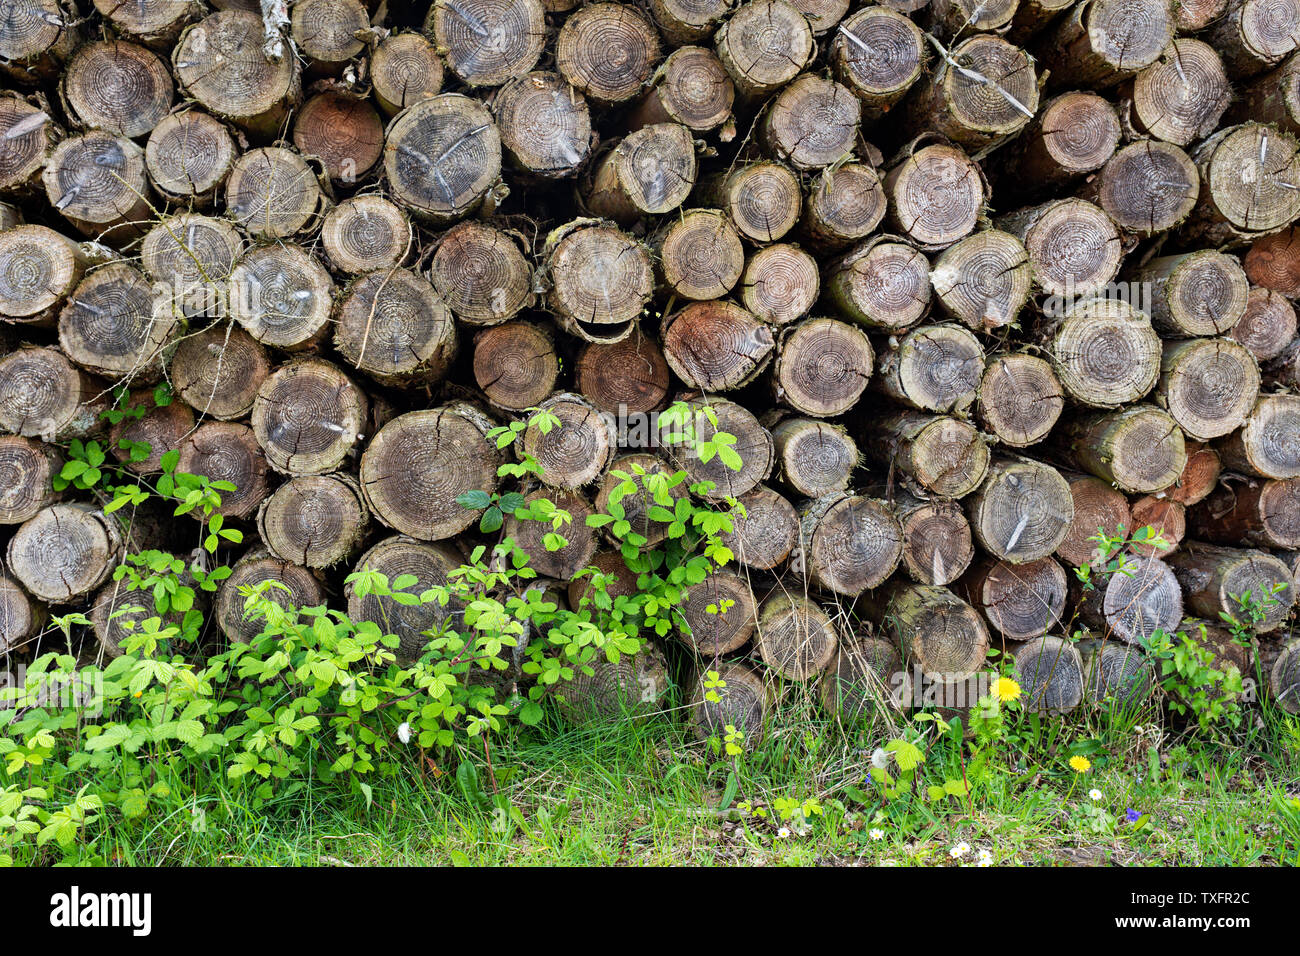 Softwood log stack. - Stock Image